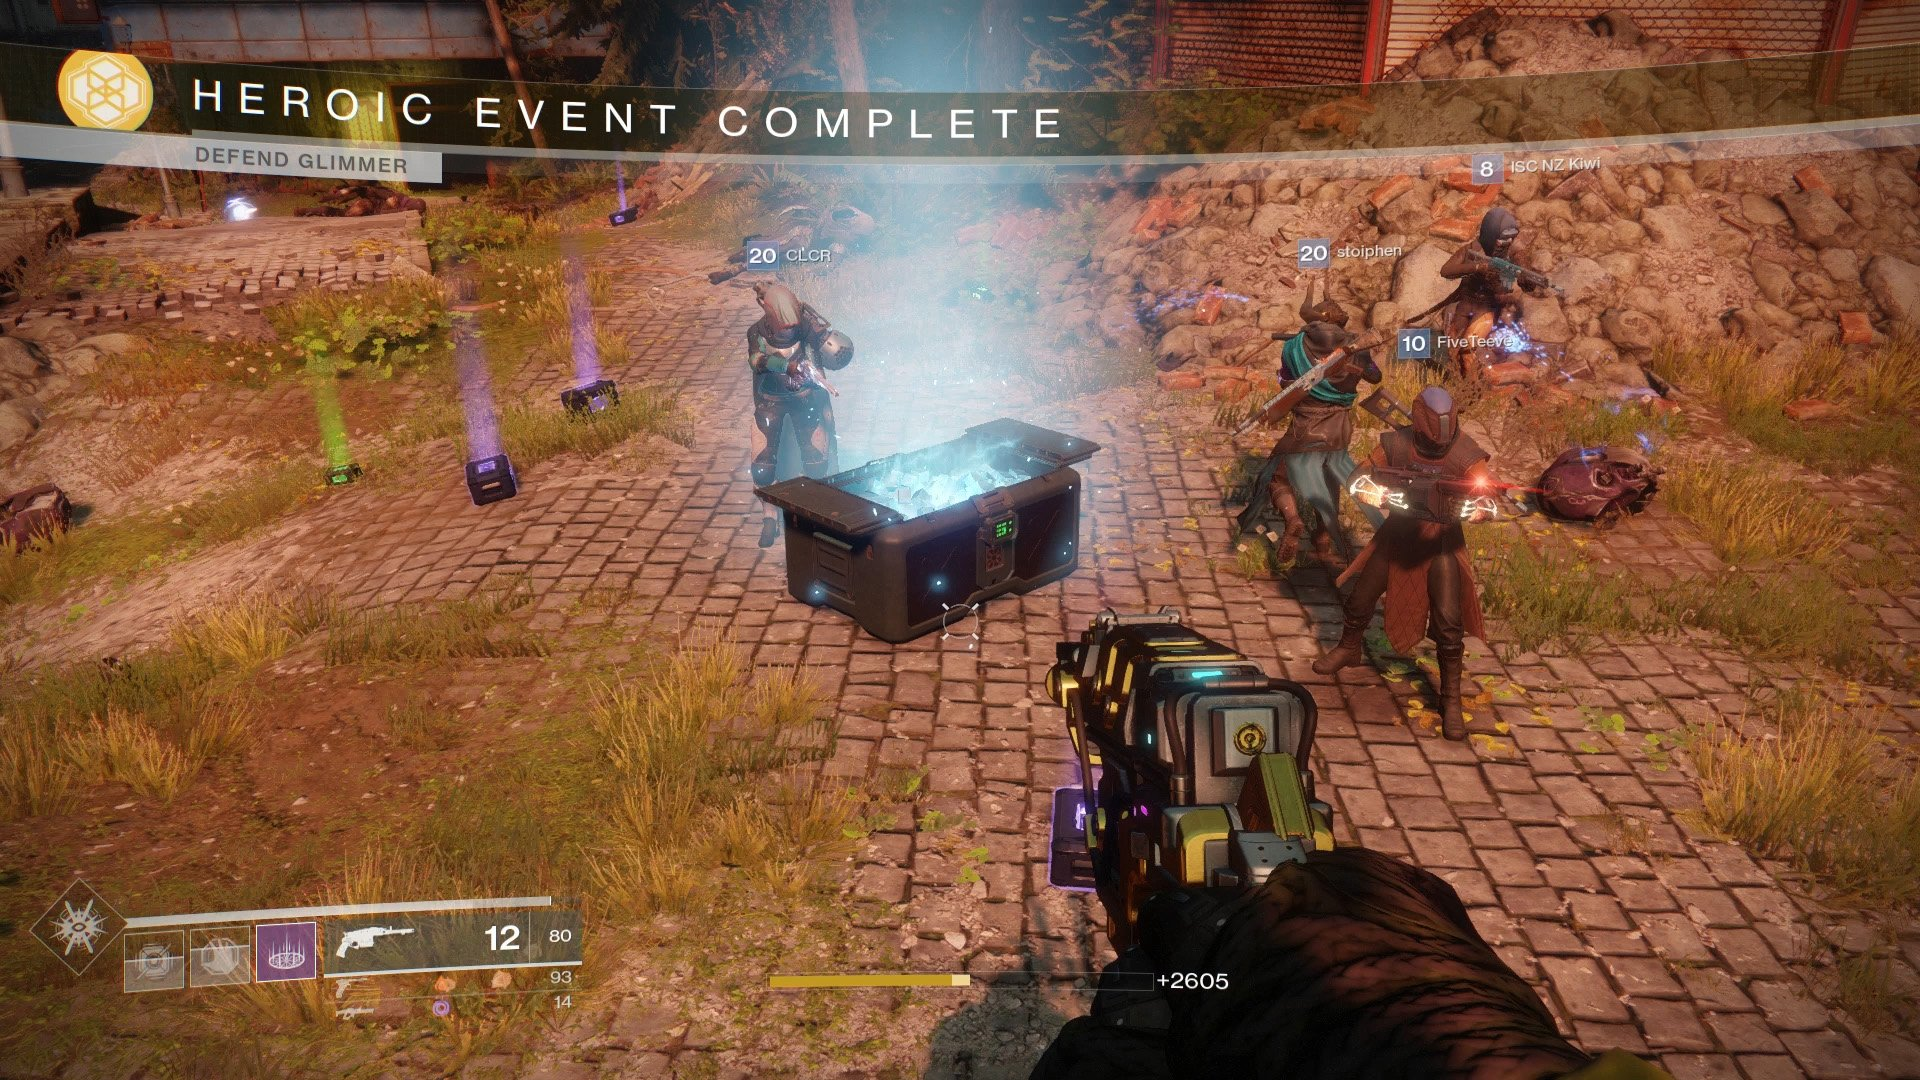 Killing enemies during the Heroic Public Event earn you Glimmer, as does the loot chest at the end.